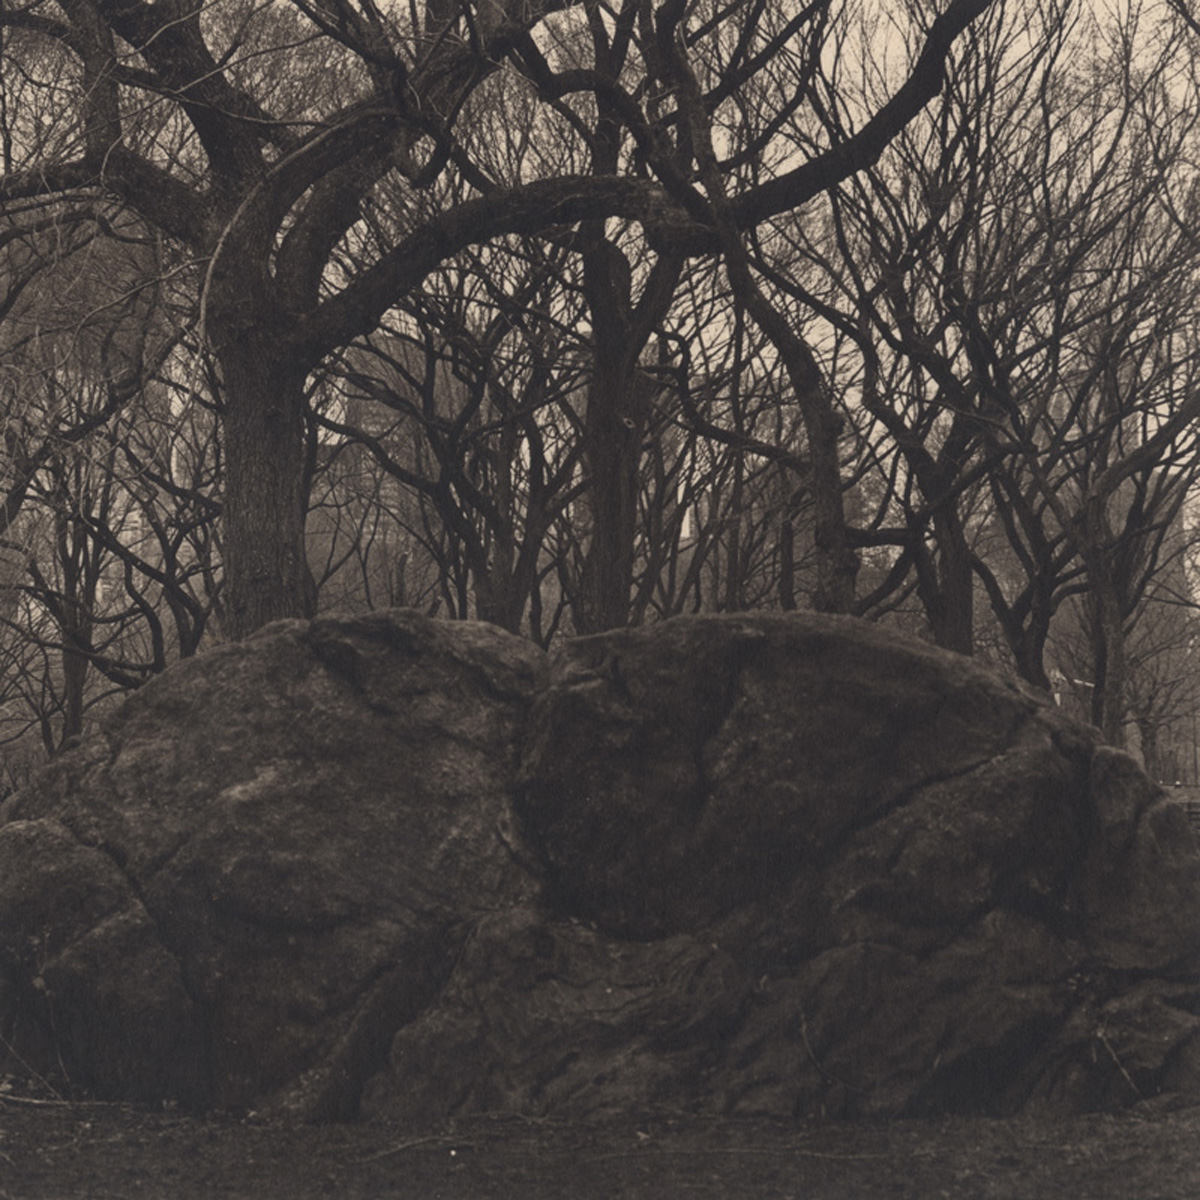 Takeshi Shikama Urban Forests - Central Park #18